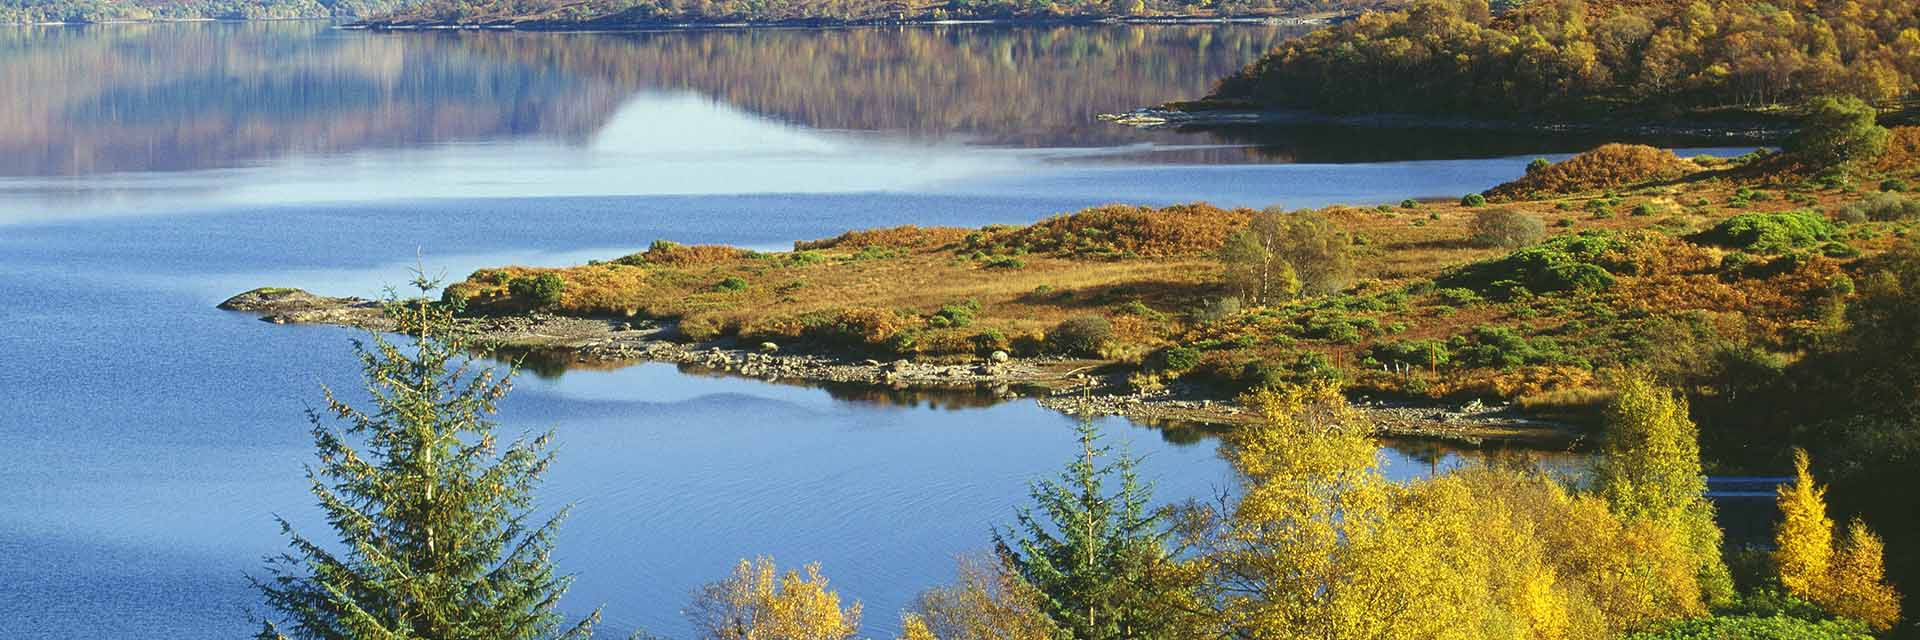 Loch Lomond and the Trossachs National Park